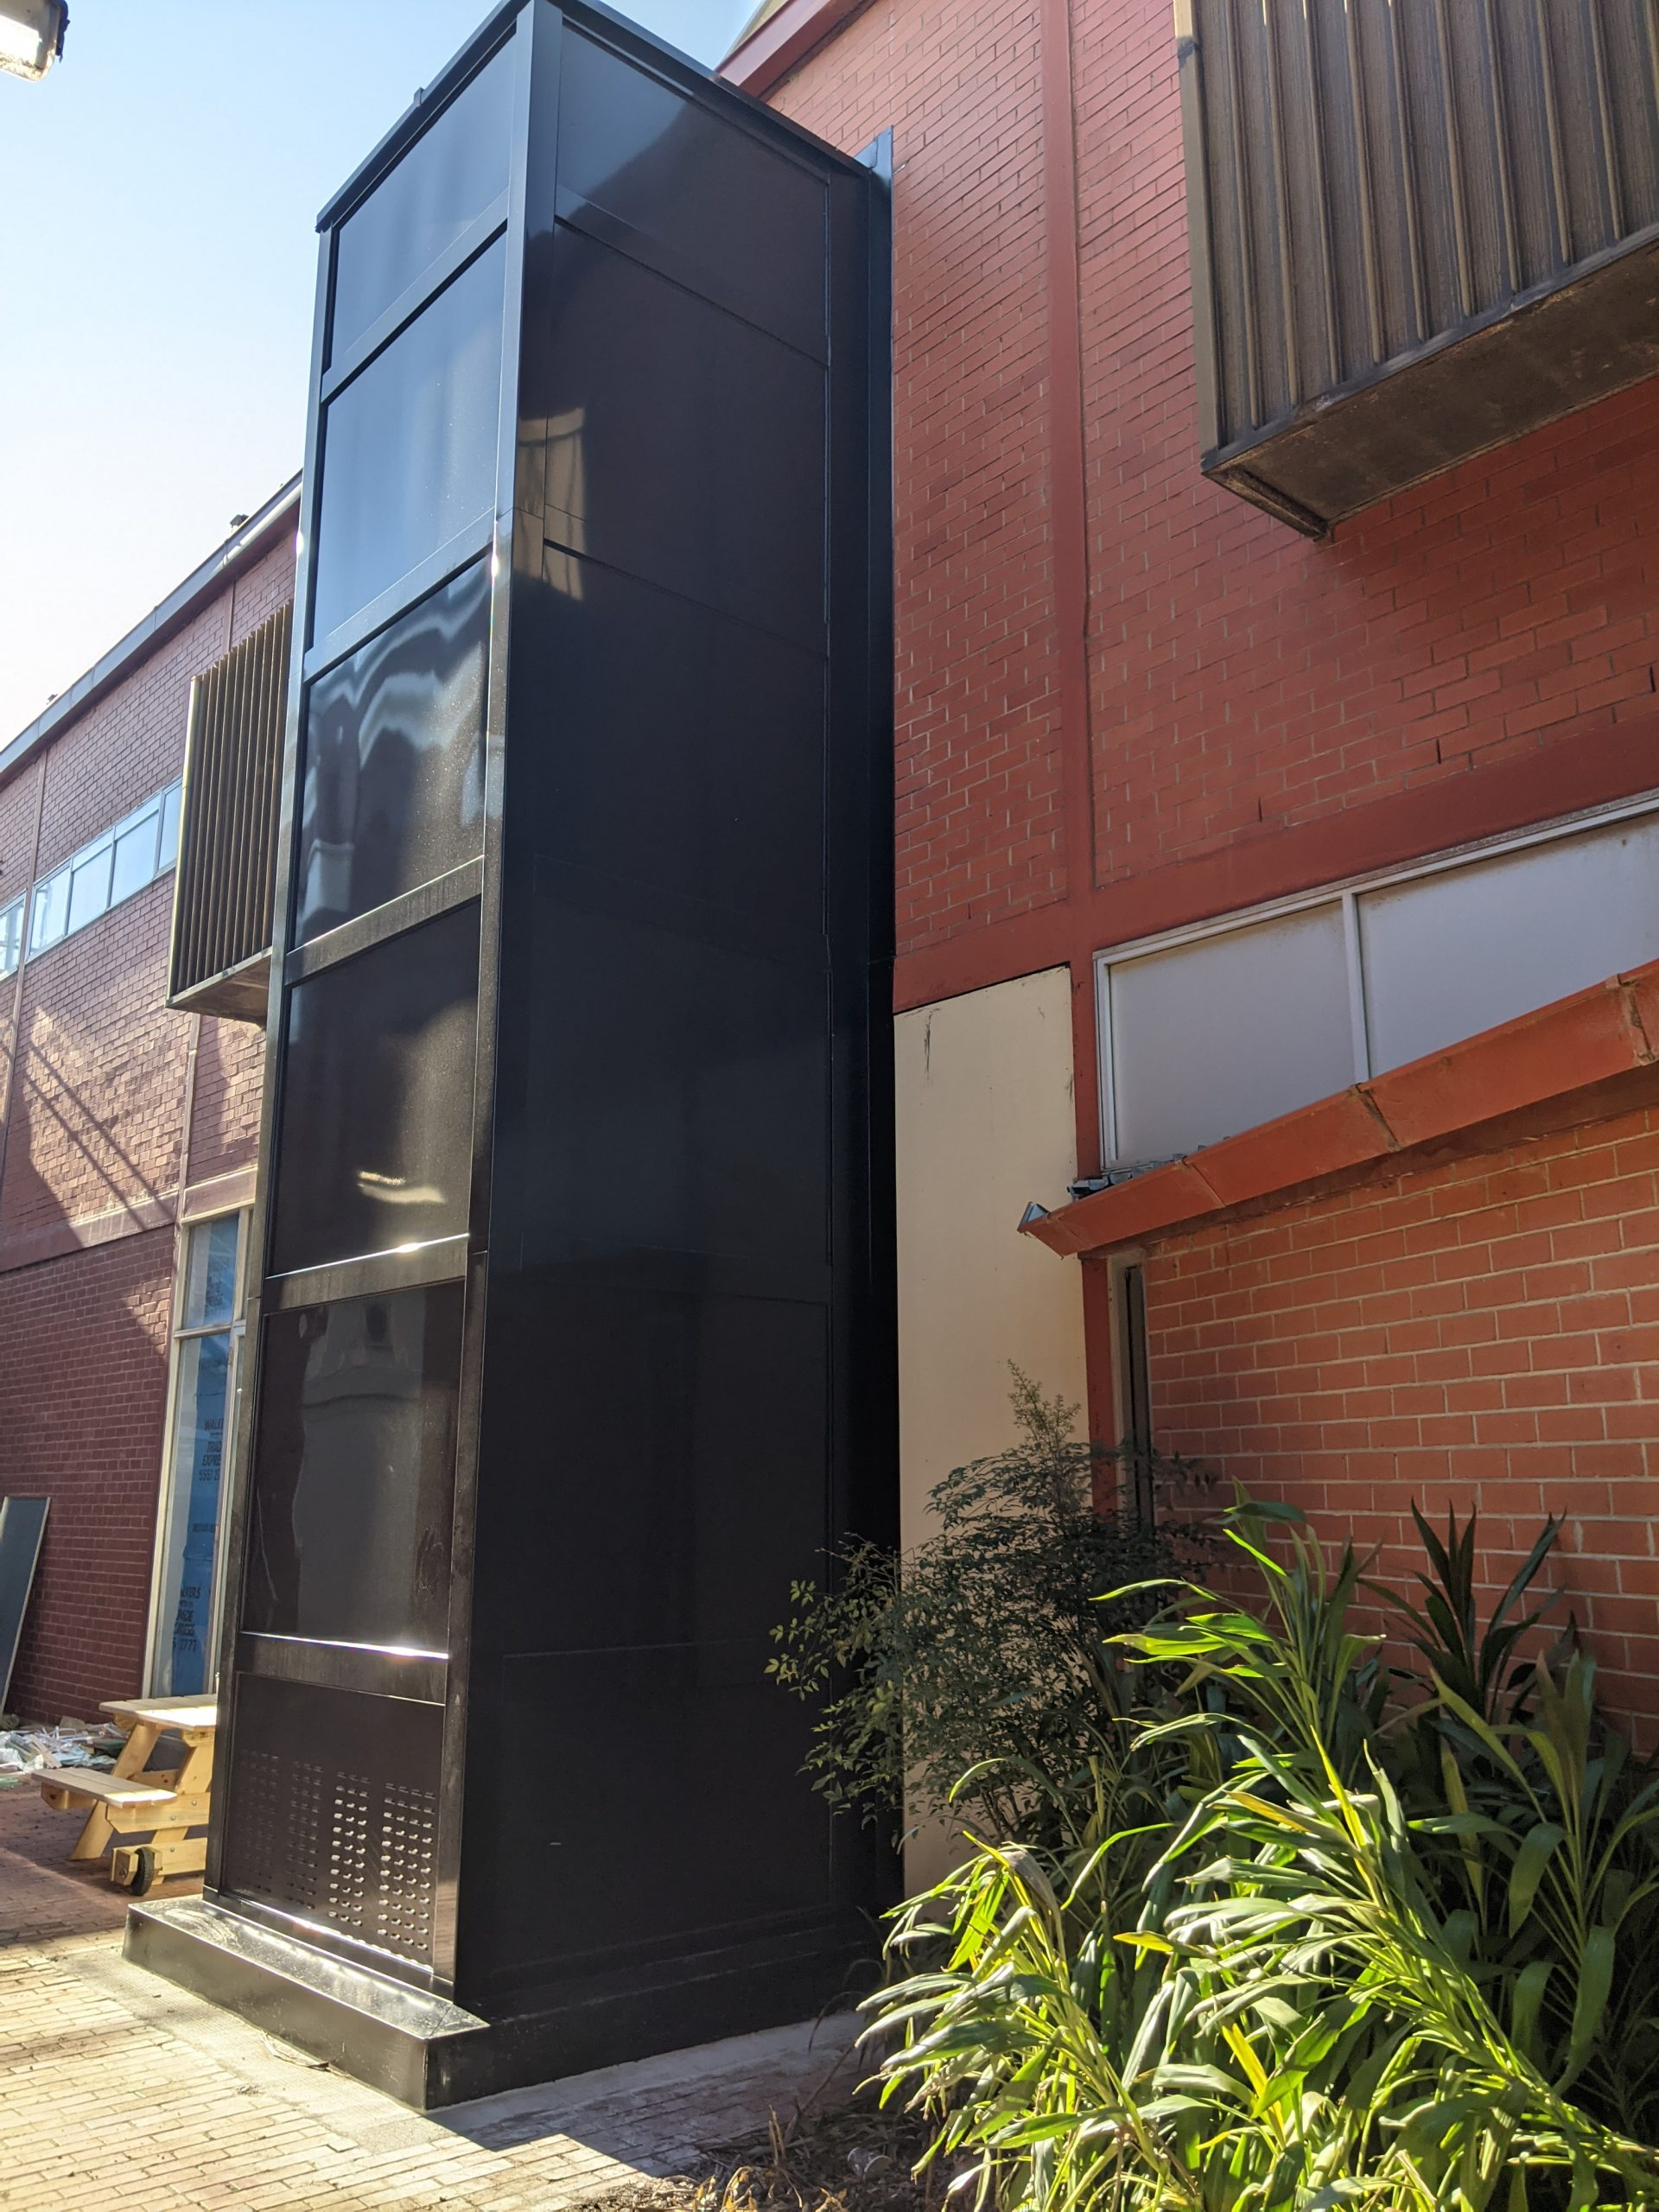 an outdoor elevator next to a commercial building.